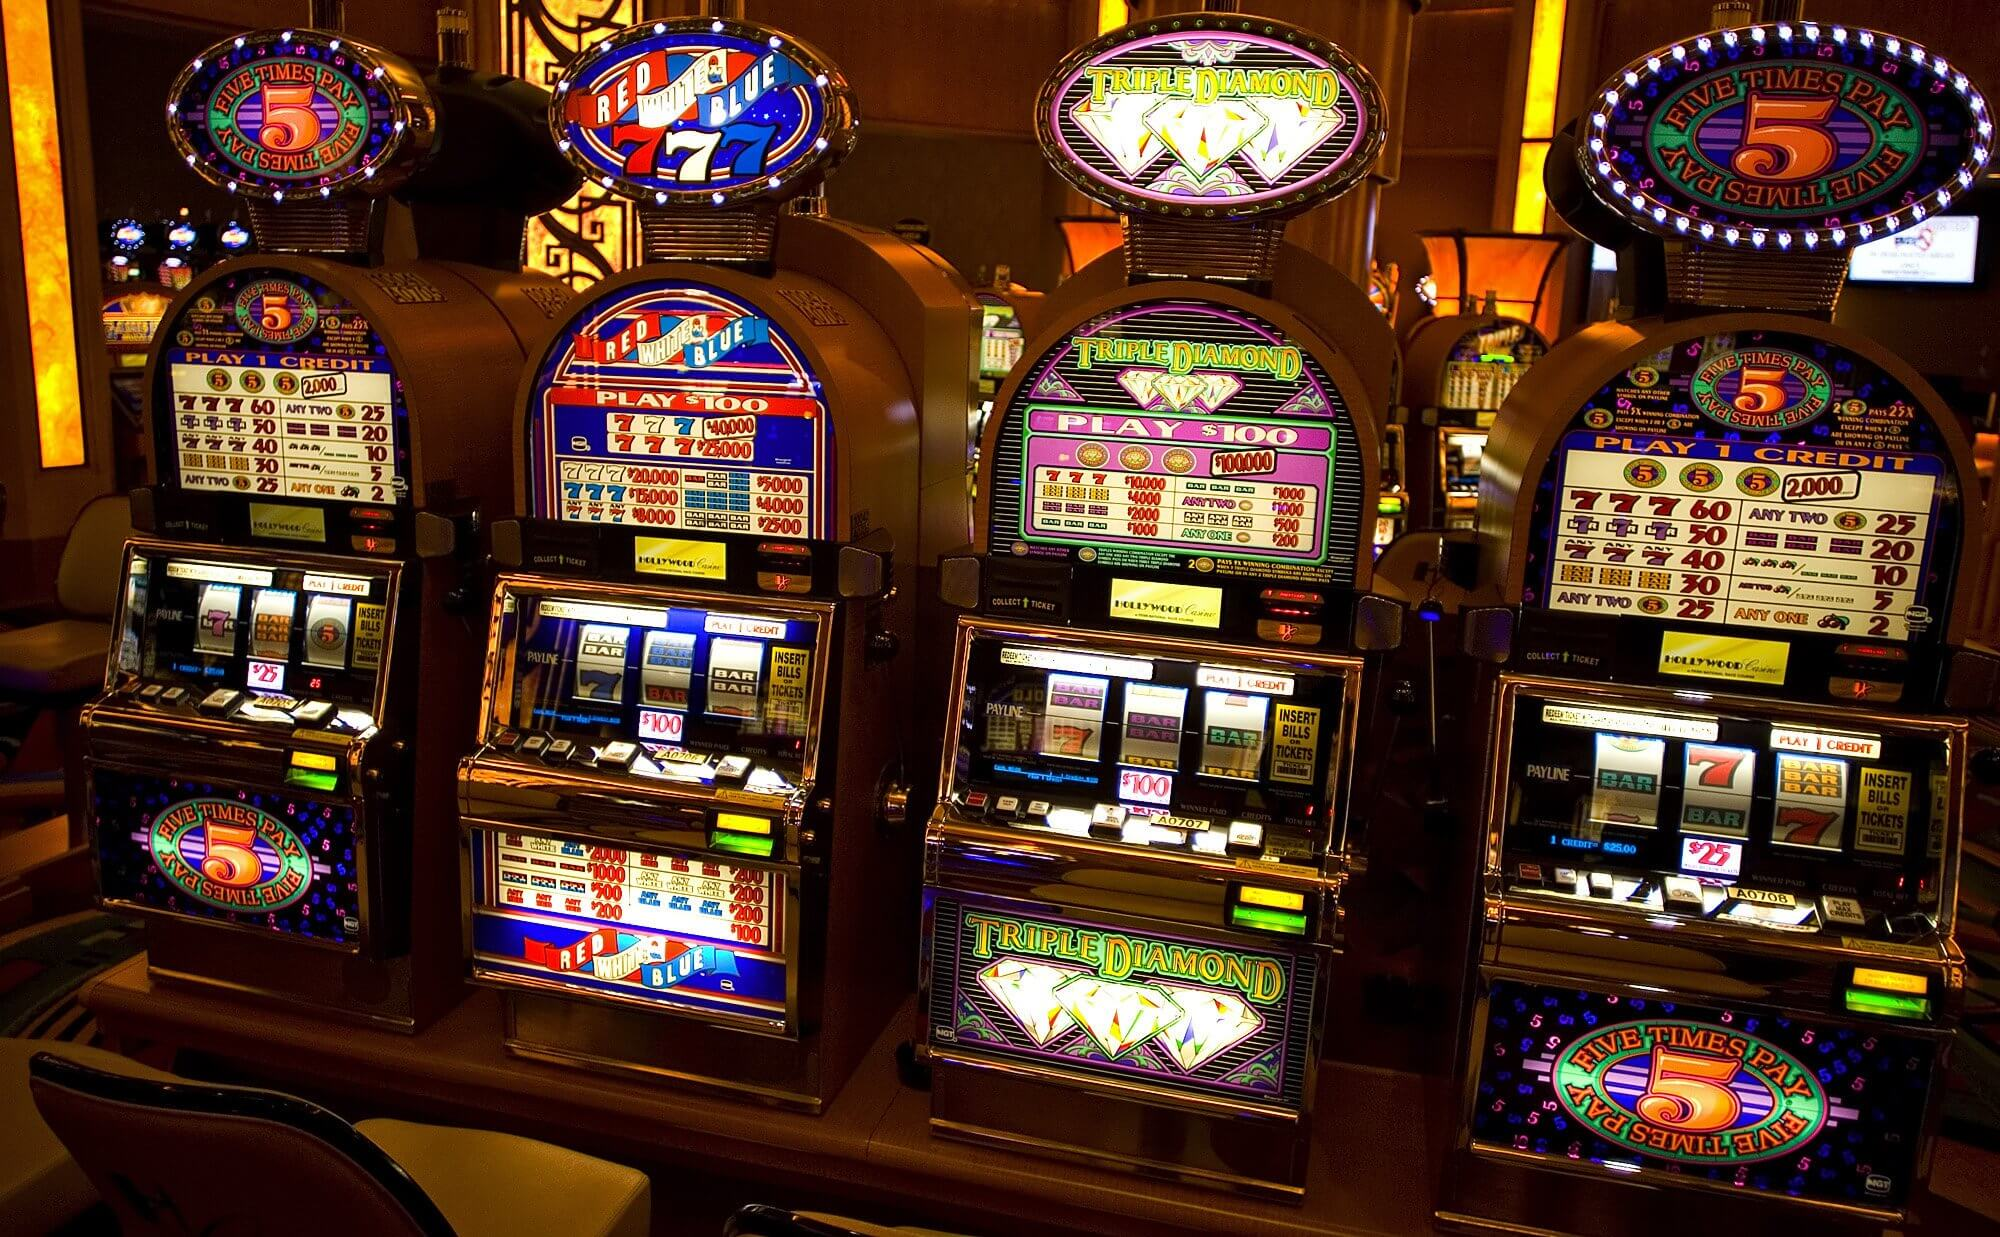 15 Powerful Gambling Tips That Actually Work